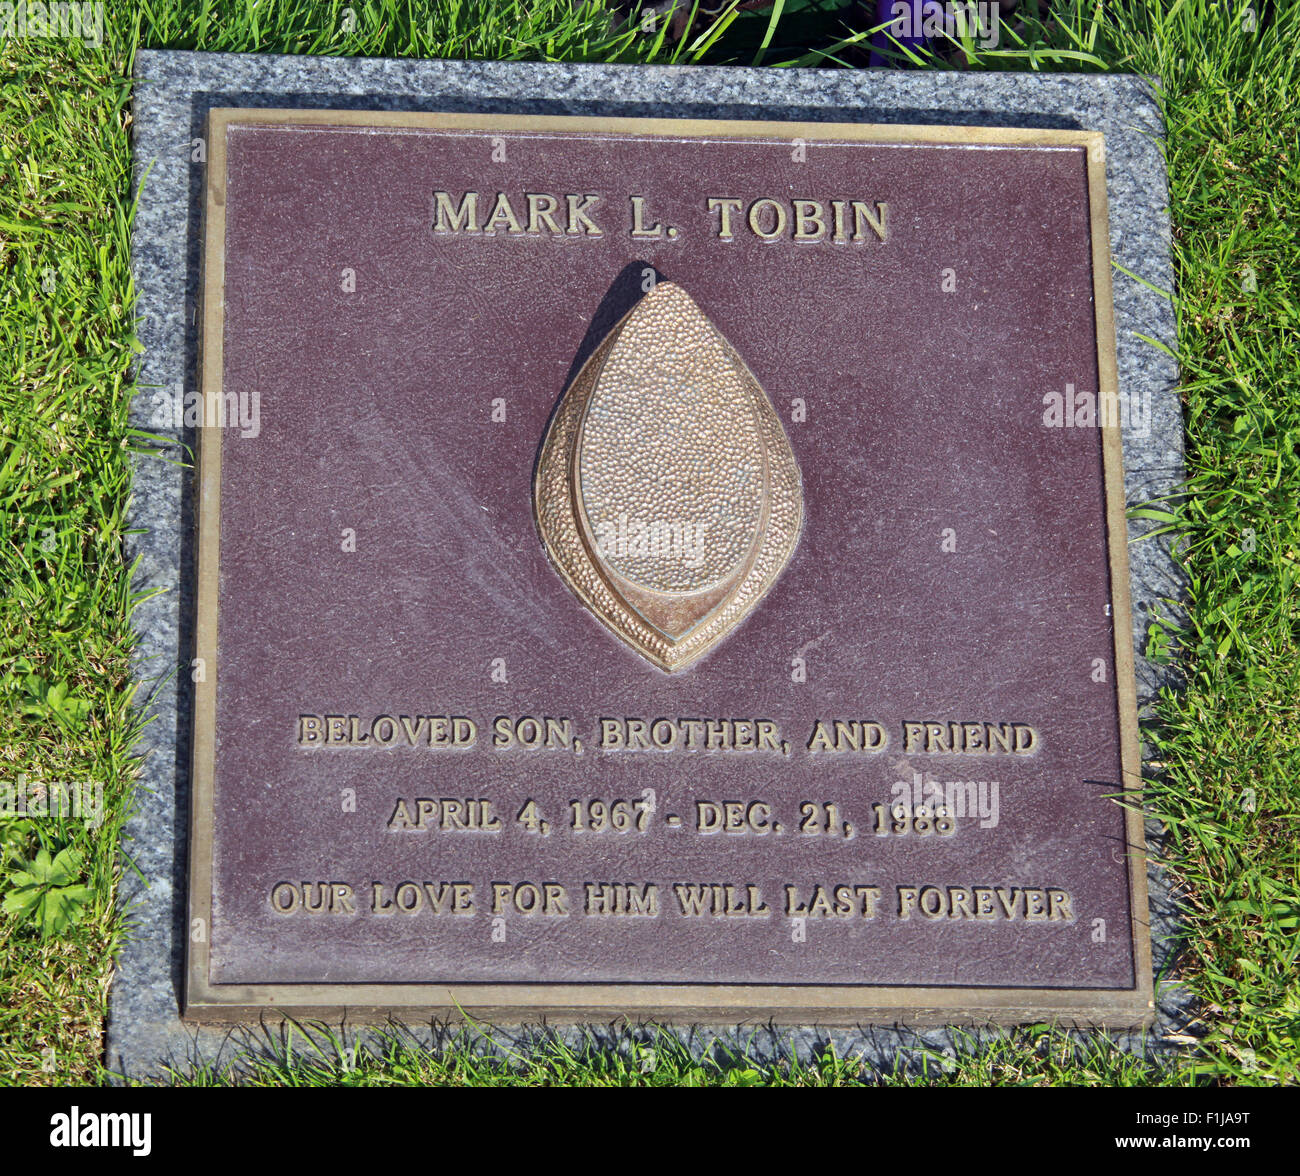 Lockerbie PanAm103 In Rememberance Memorial Mark L Tobin,Scotland - Stock Image